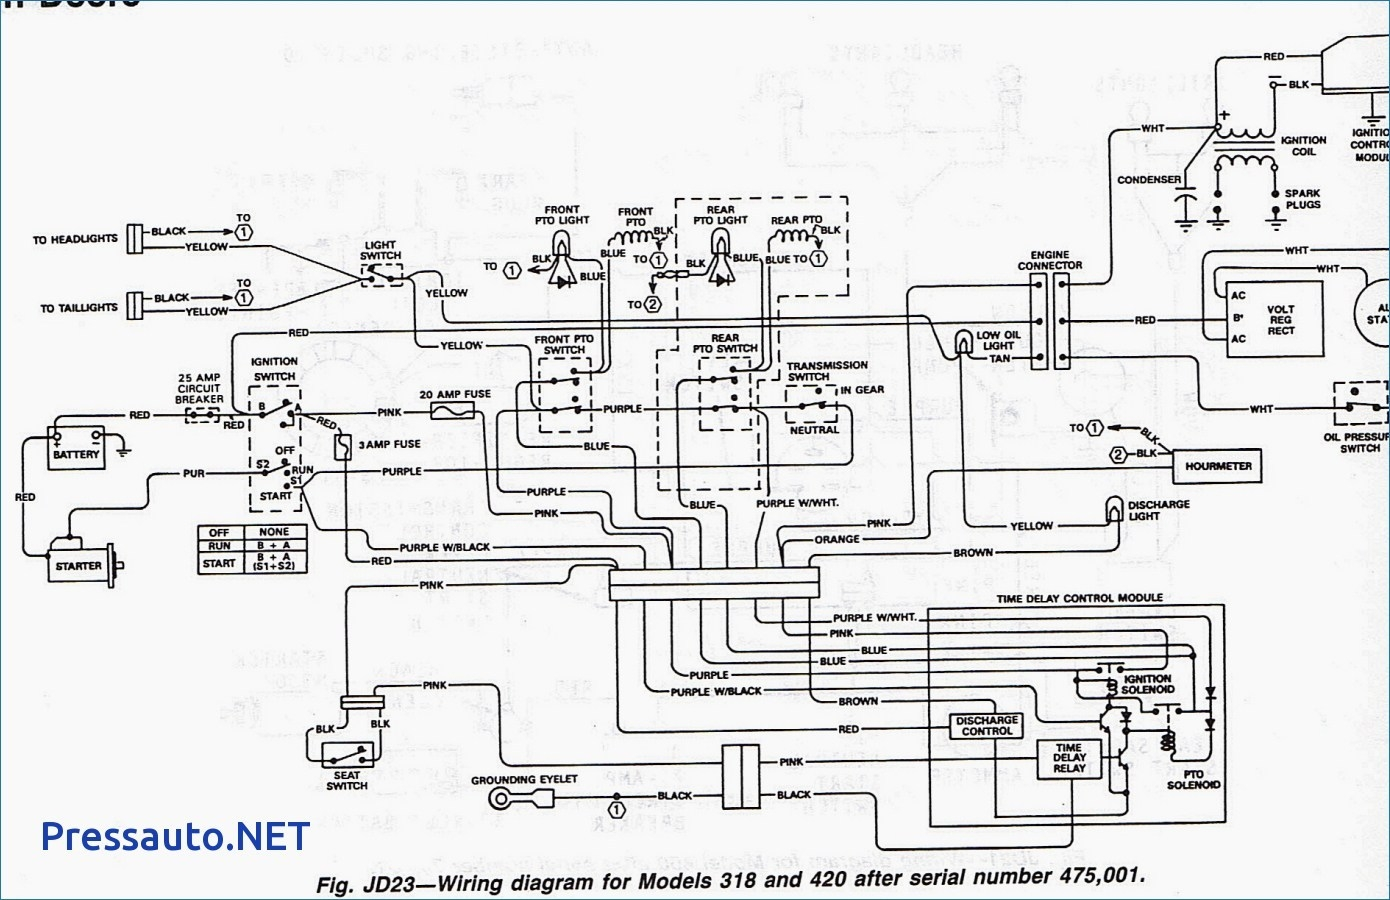 love star ind corp ls 53t1 4p wiring diagram Download-318 ci engine diagram free image about wiring diagram wire rh beinclover co John Deere 112 Electric Lift Wiring Diagram John Deere 112 Electric Lift 17-e